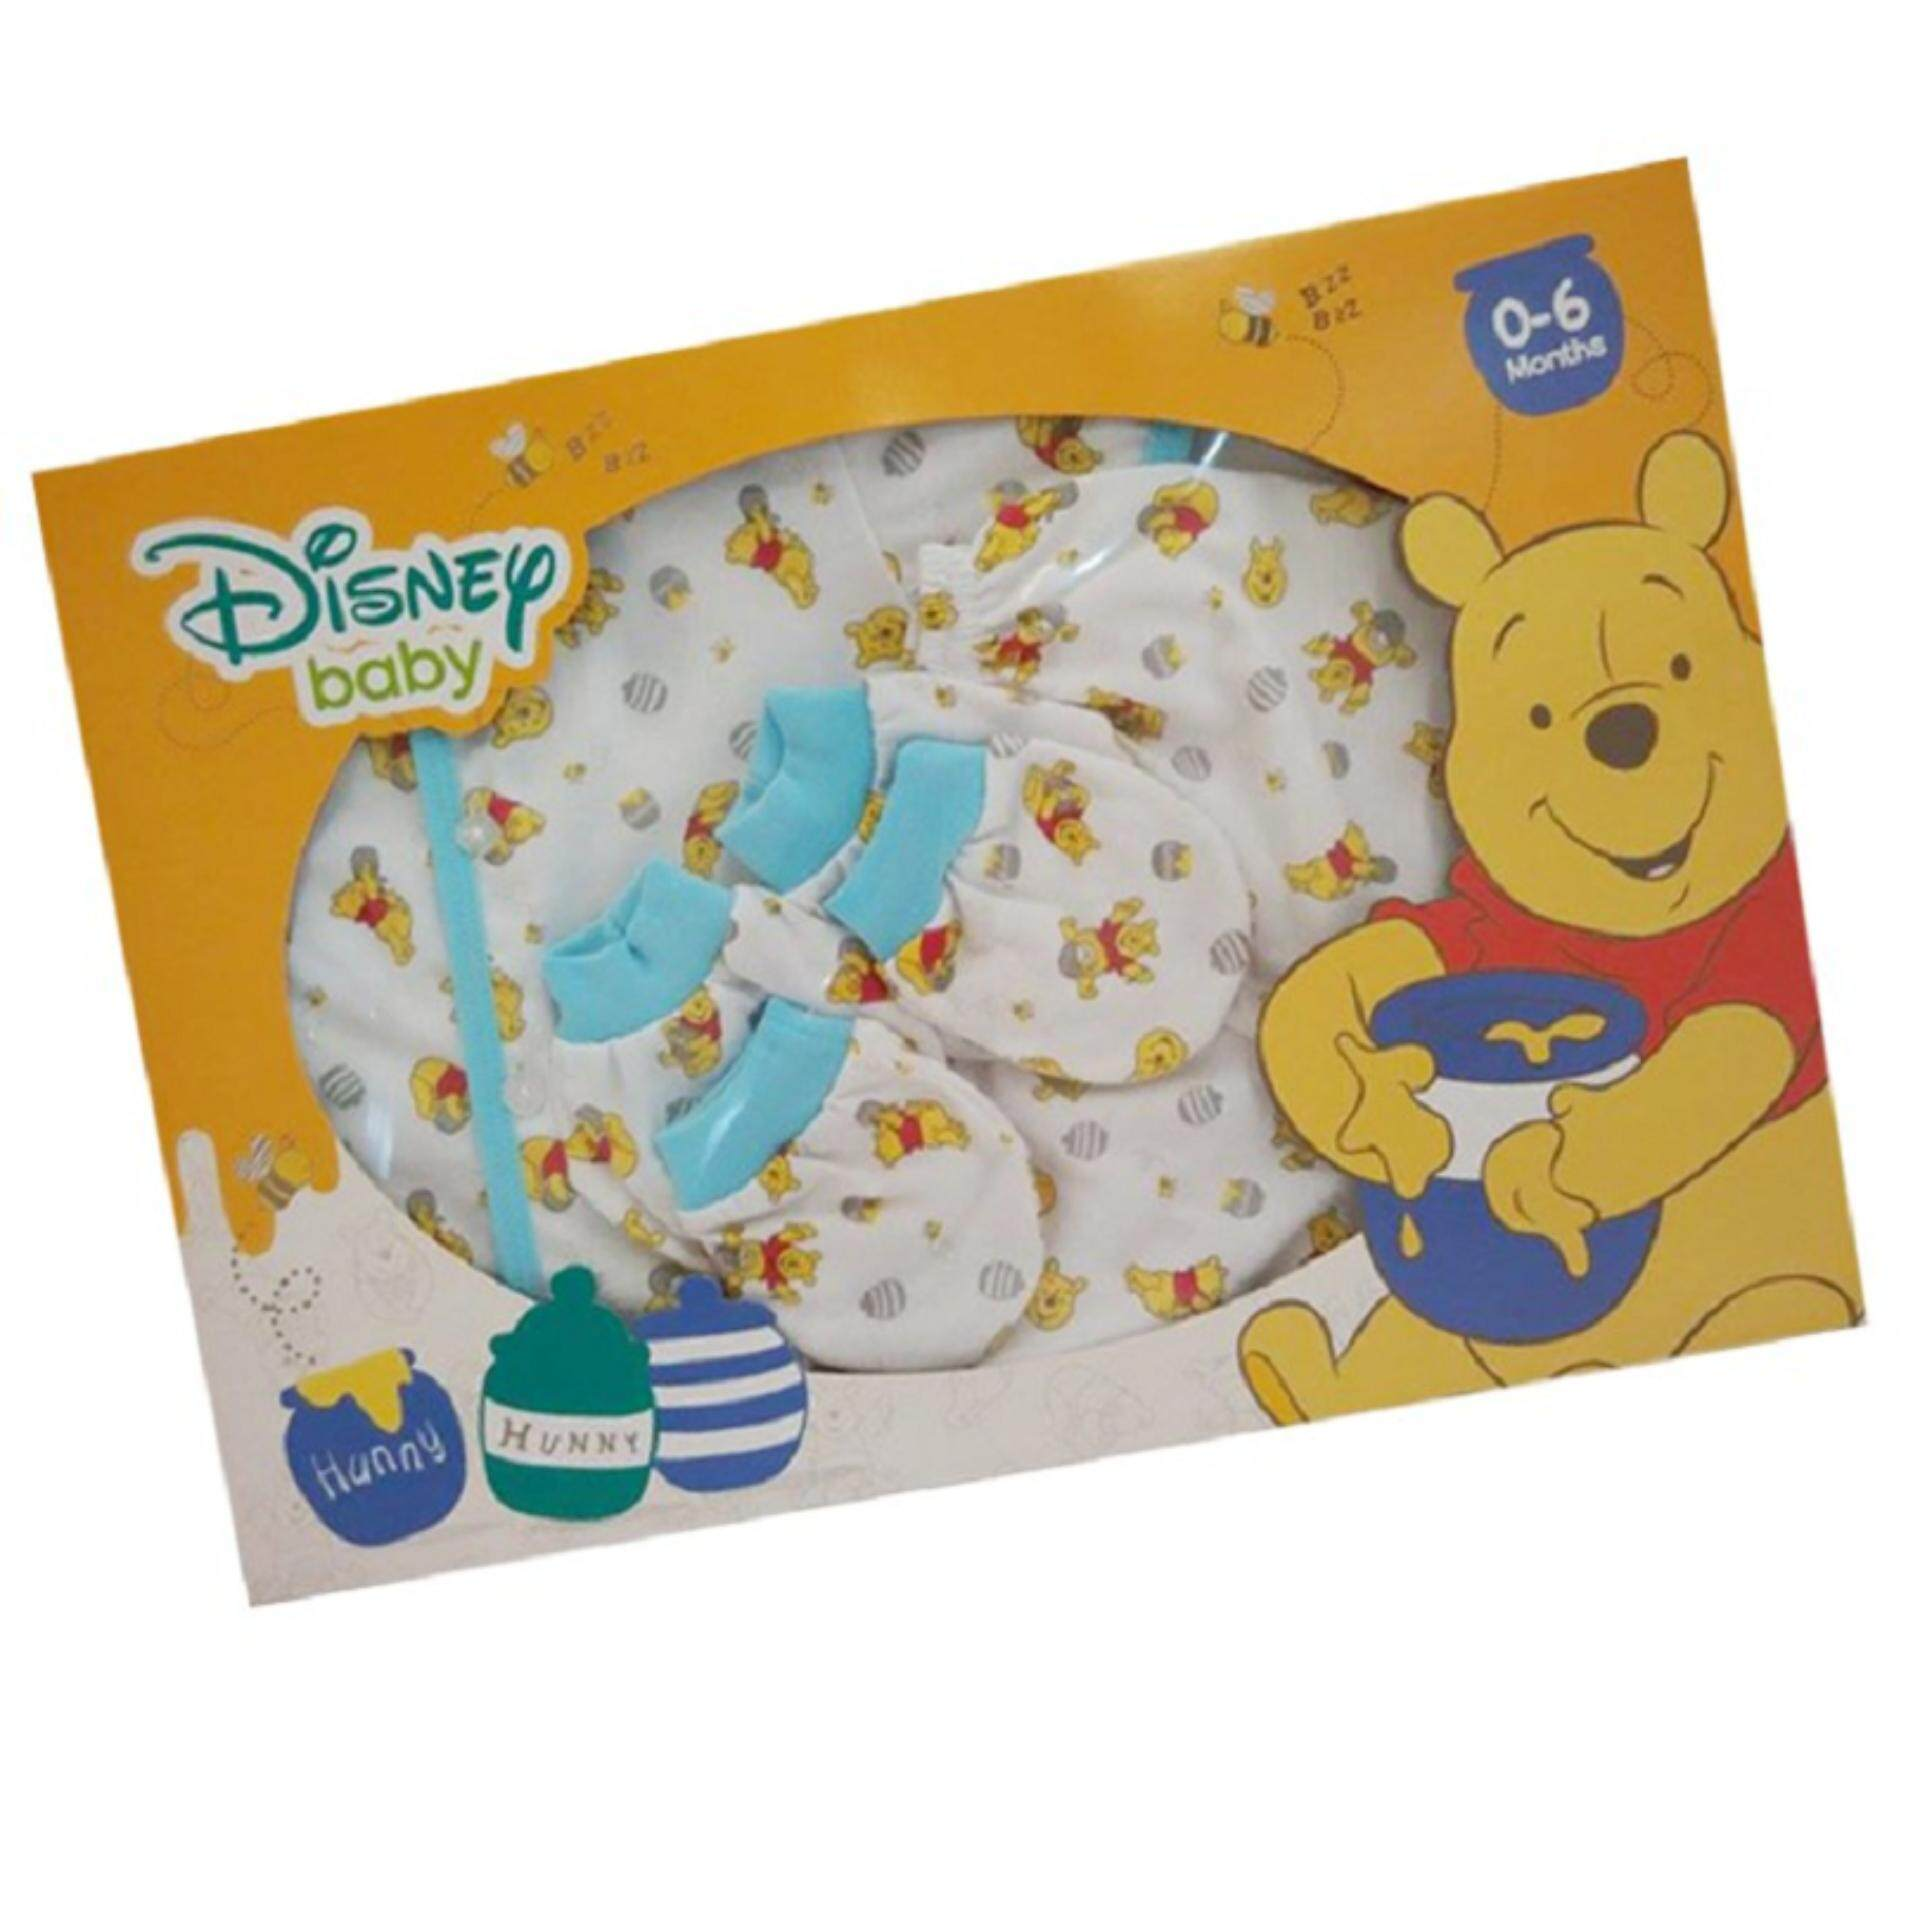 b8d76e1a0 Disney Baby Winnie The Pooh Boy Gift Set - Yellow Colour